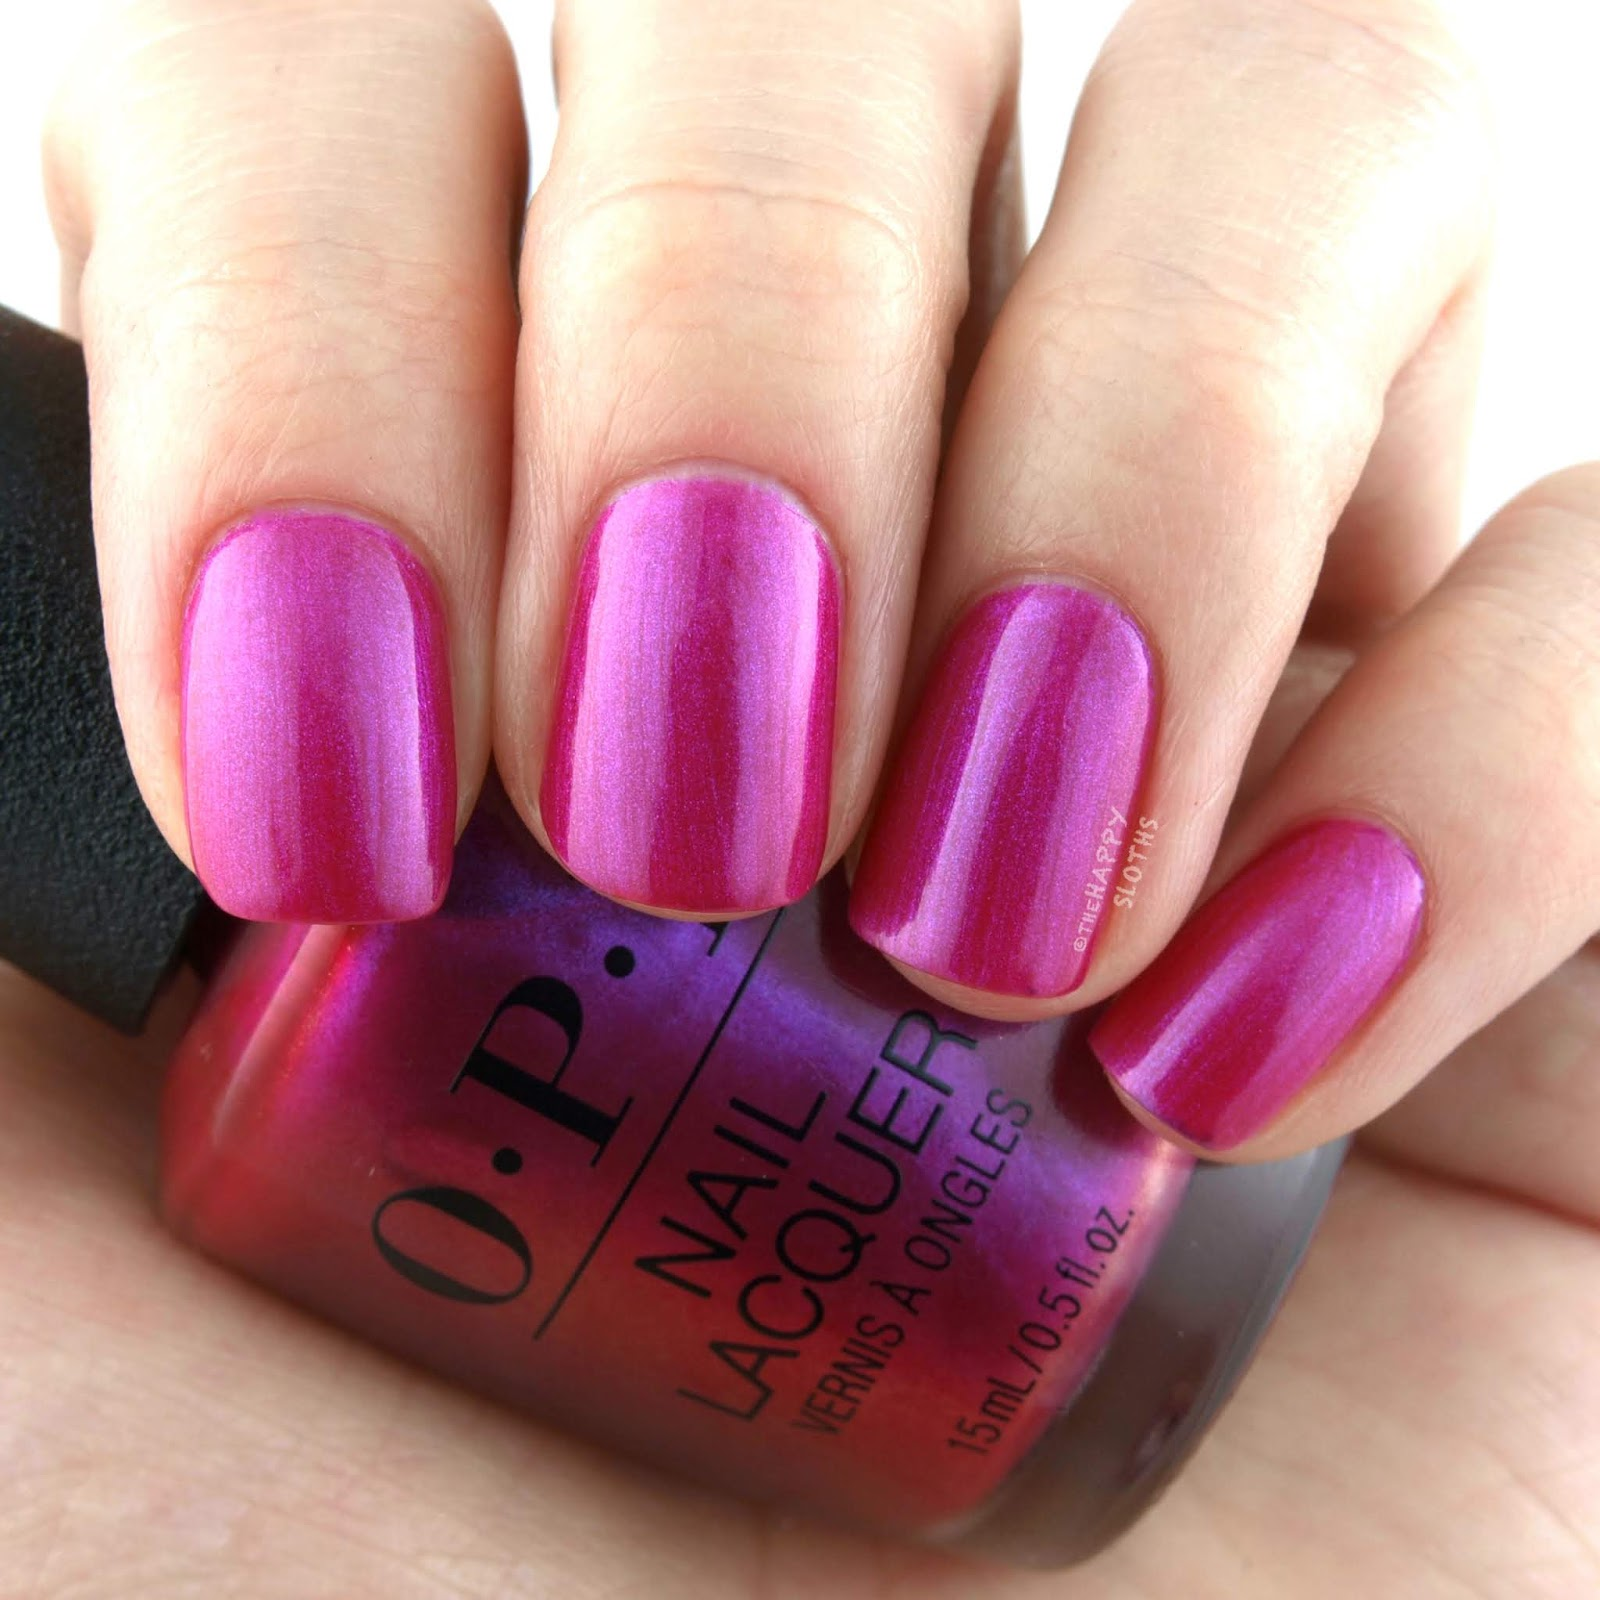 OPI Spring 2019 Tokyo Collection | All Your Dreams in Vending Machines: Review and Swatches